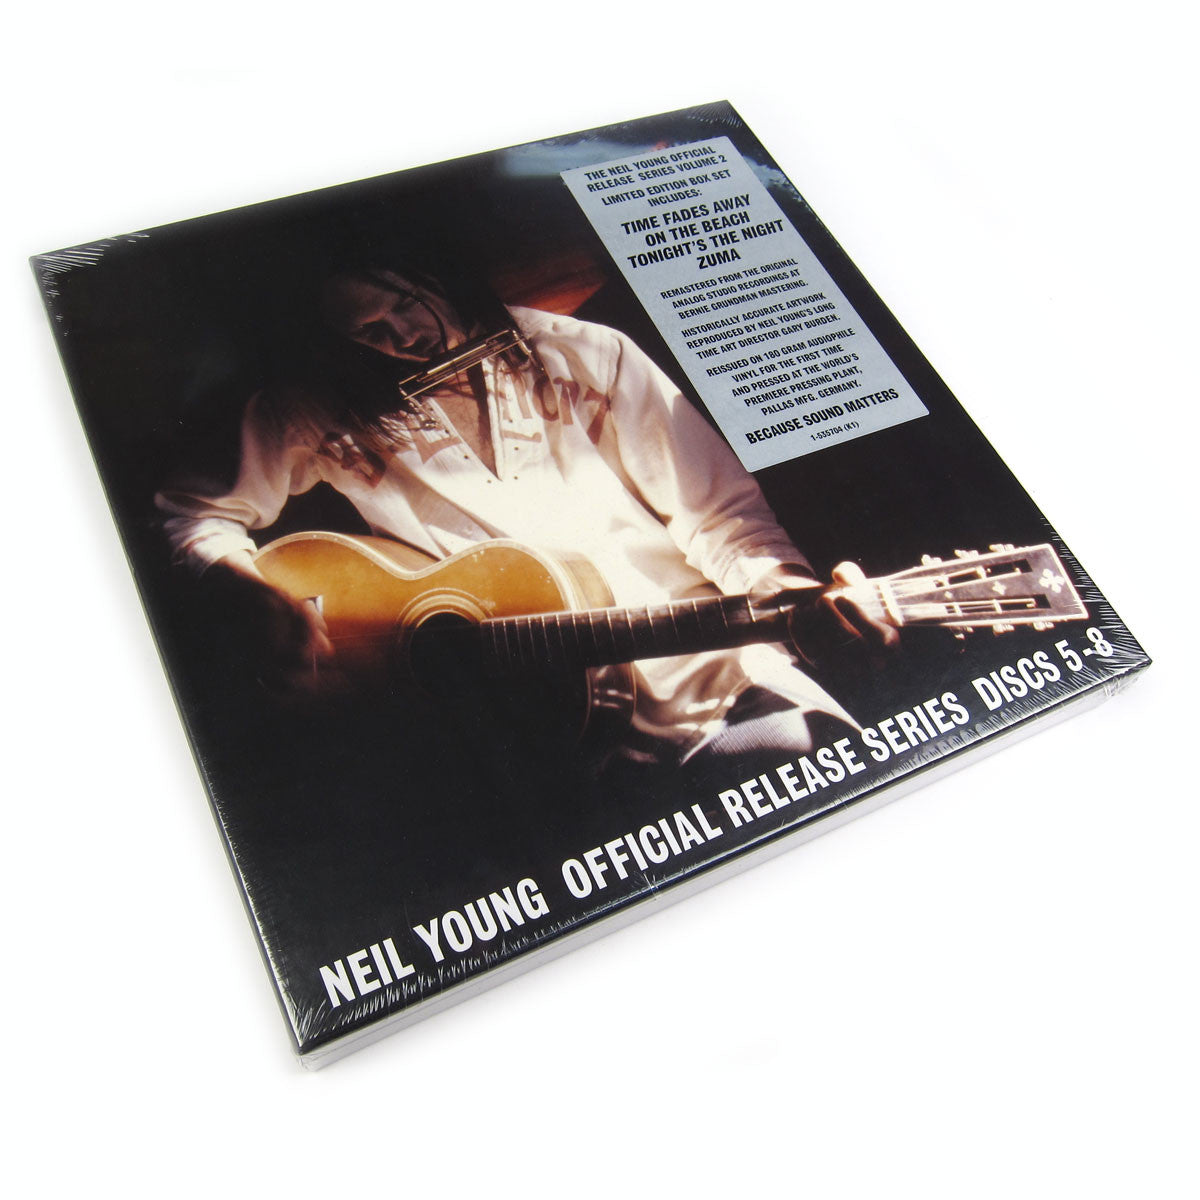 Neil Young: Official Release Series Discs 5-8 (180g) Vinyl 4LP (Record Store Day)